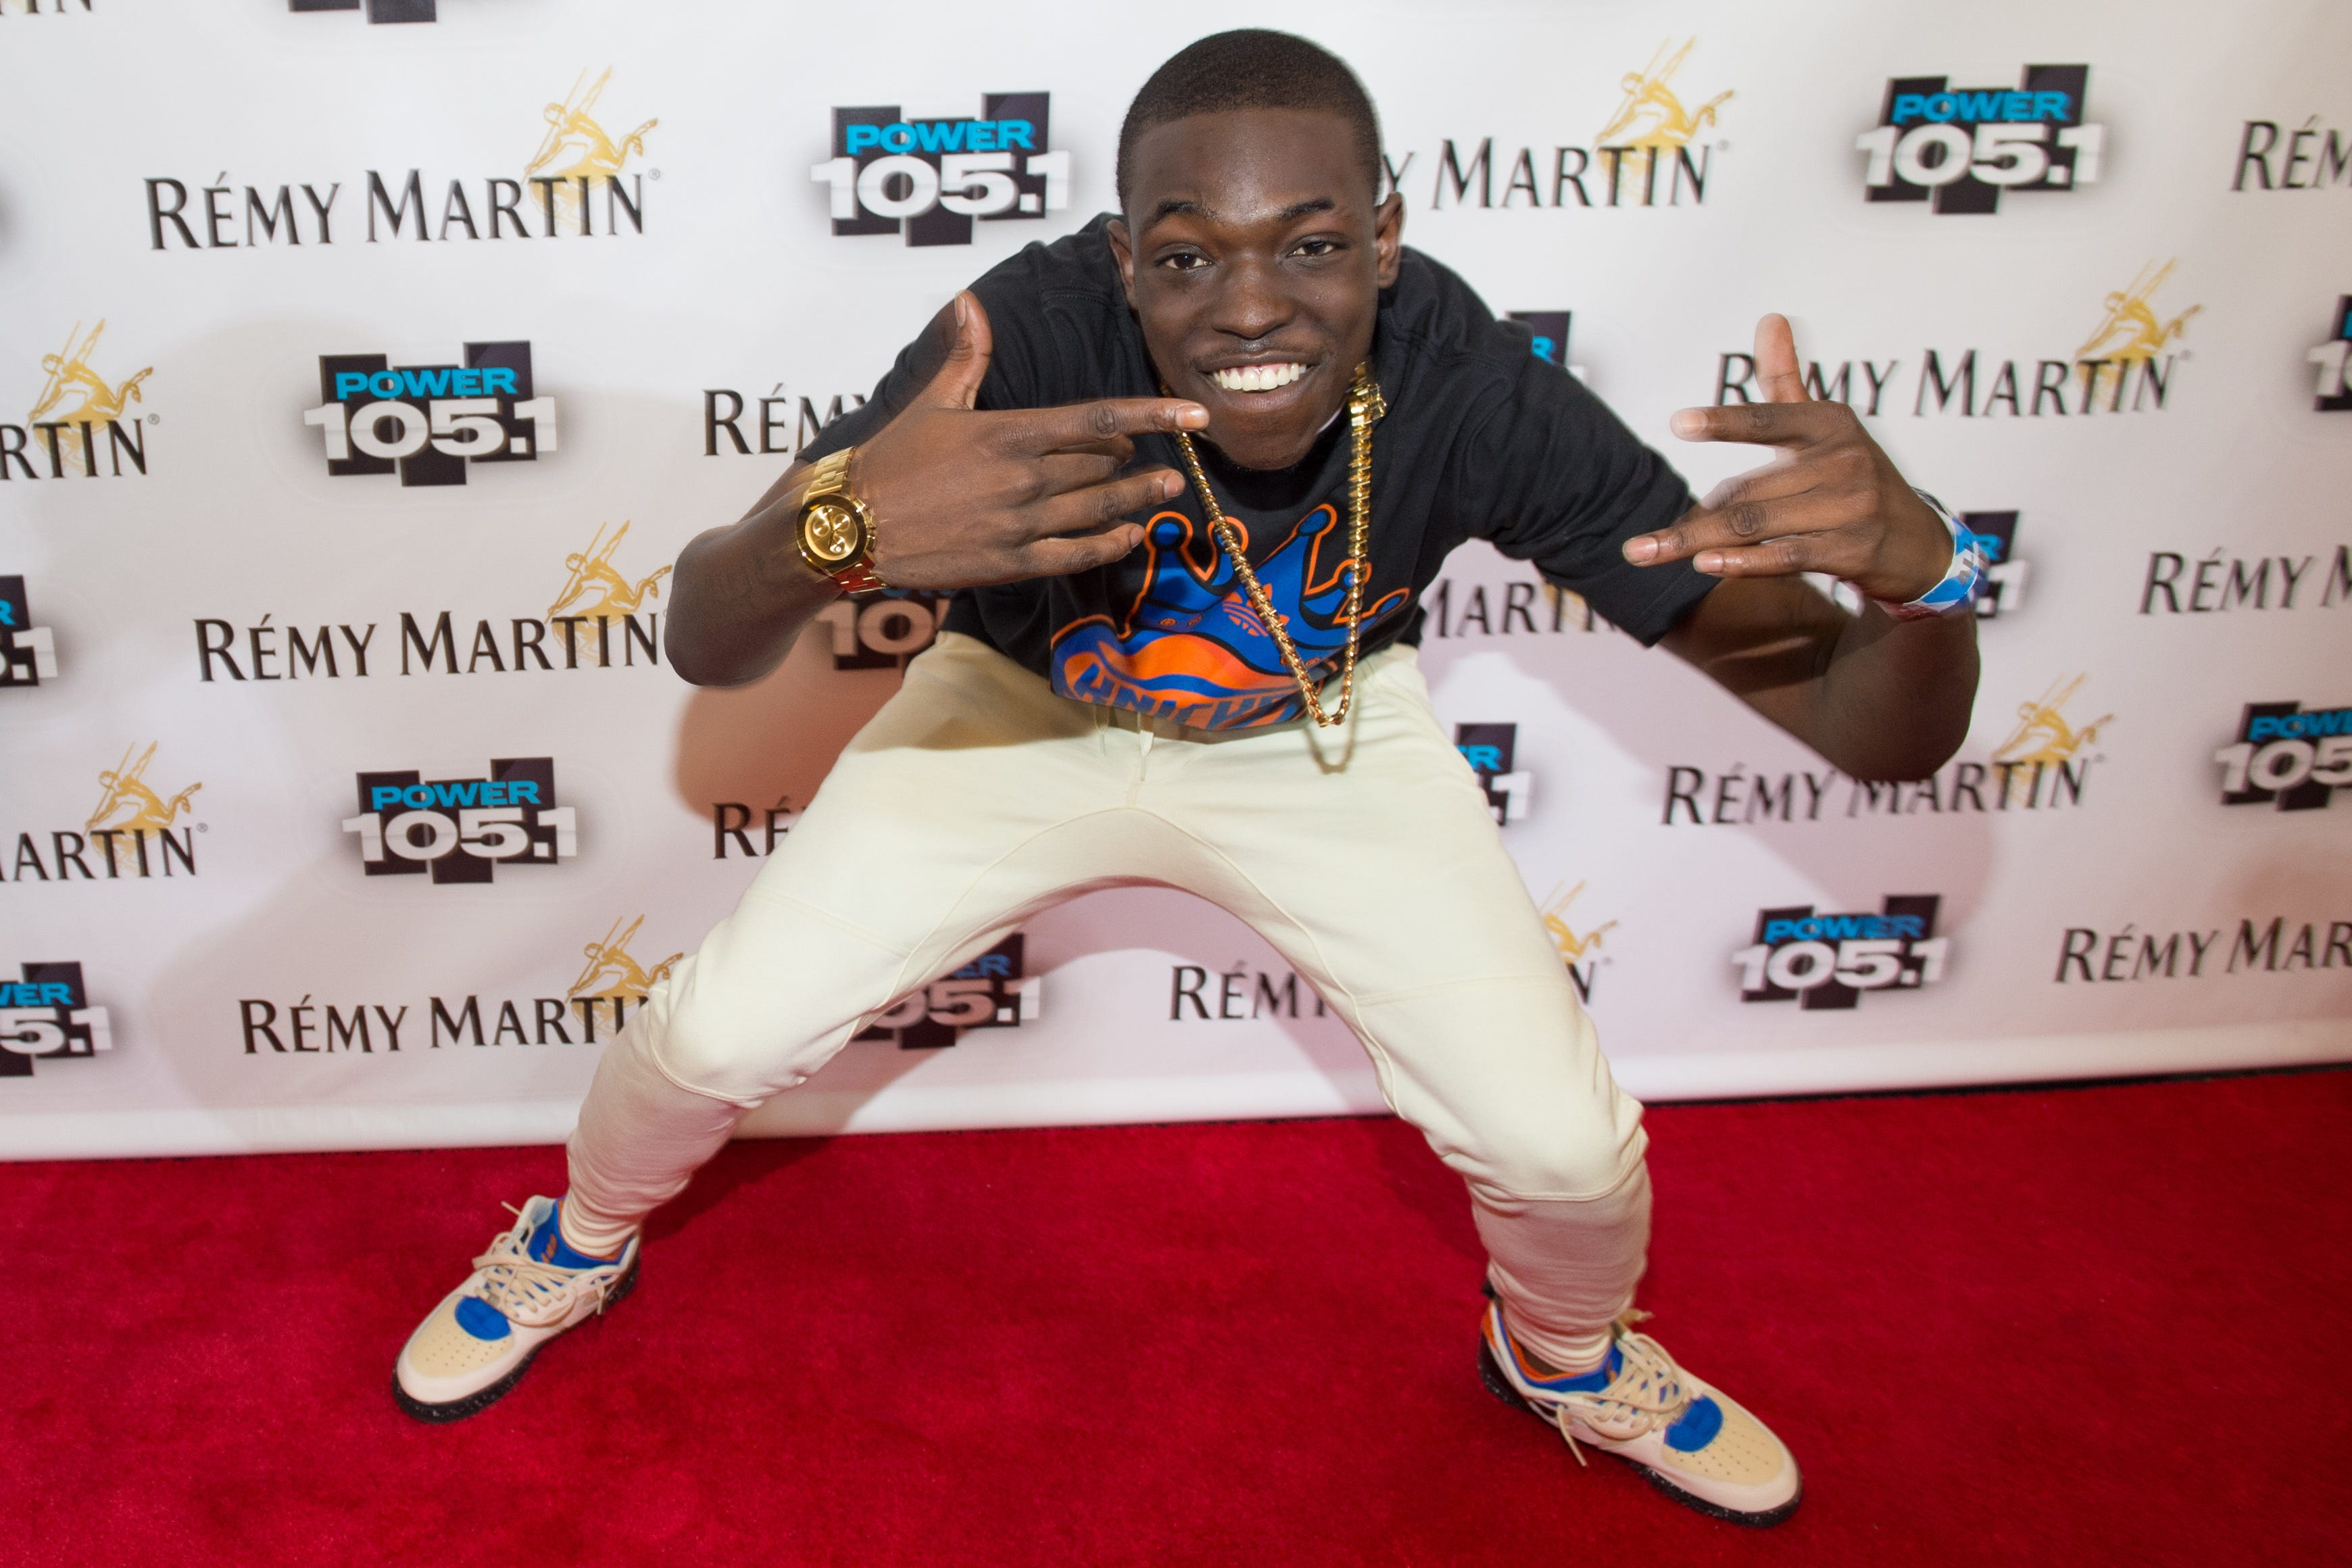 Bobby Shmurda reveals what motivated him behind bars in first post-prison interview